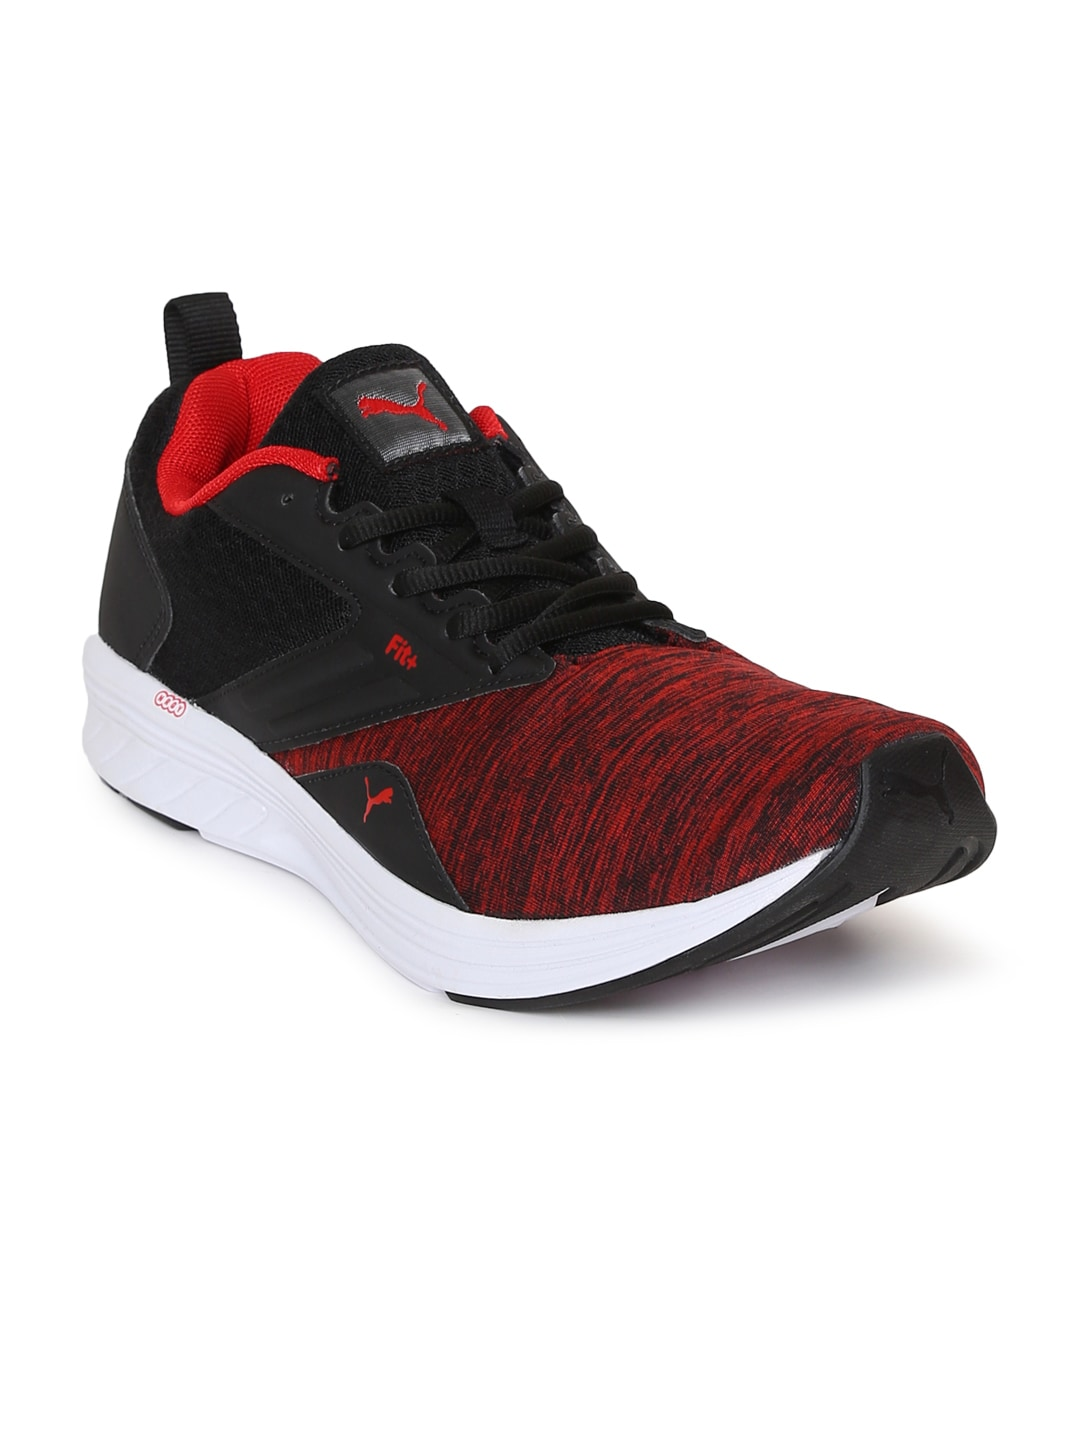 4e14d0a0a18 Puma Comet Sports Shoes - Buy Puma Comet Sports Shoes online in India